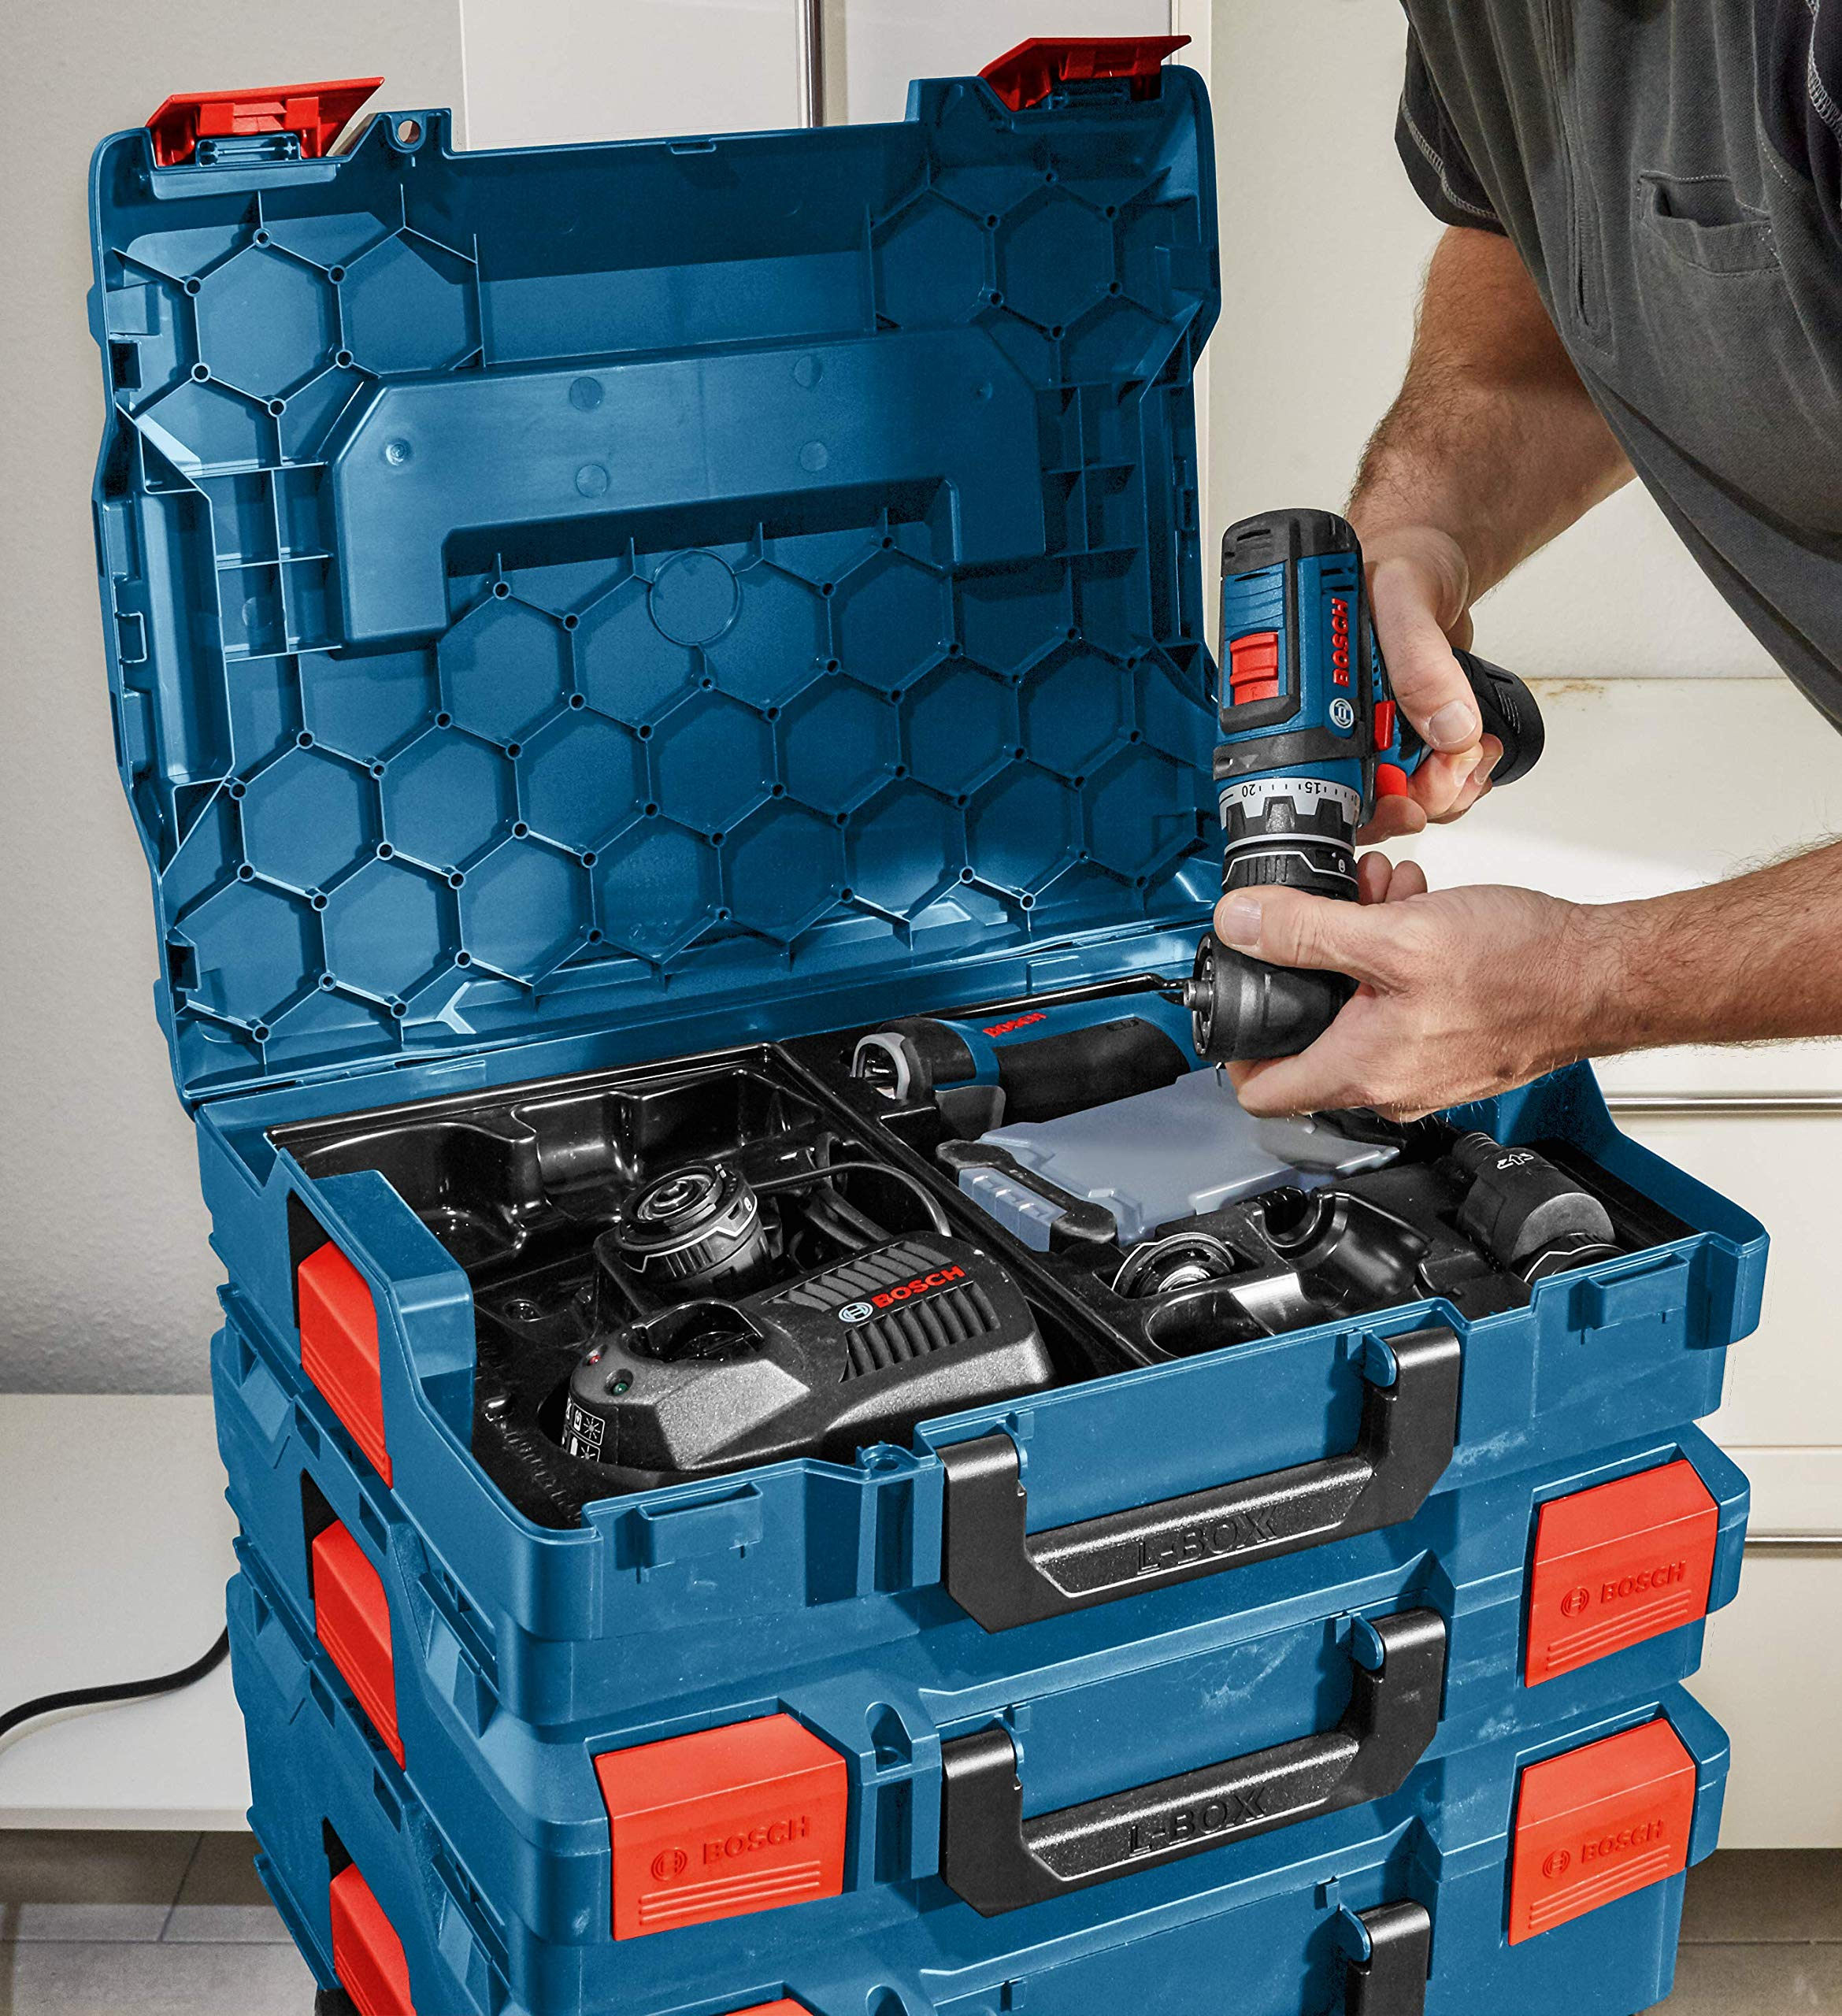 Bosch L-BOXX-1 4.5 In. x 14 In. x 17.5 In. Stackable Tool Storage Case by Bosch (Image #7)